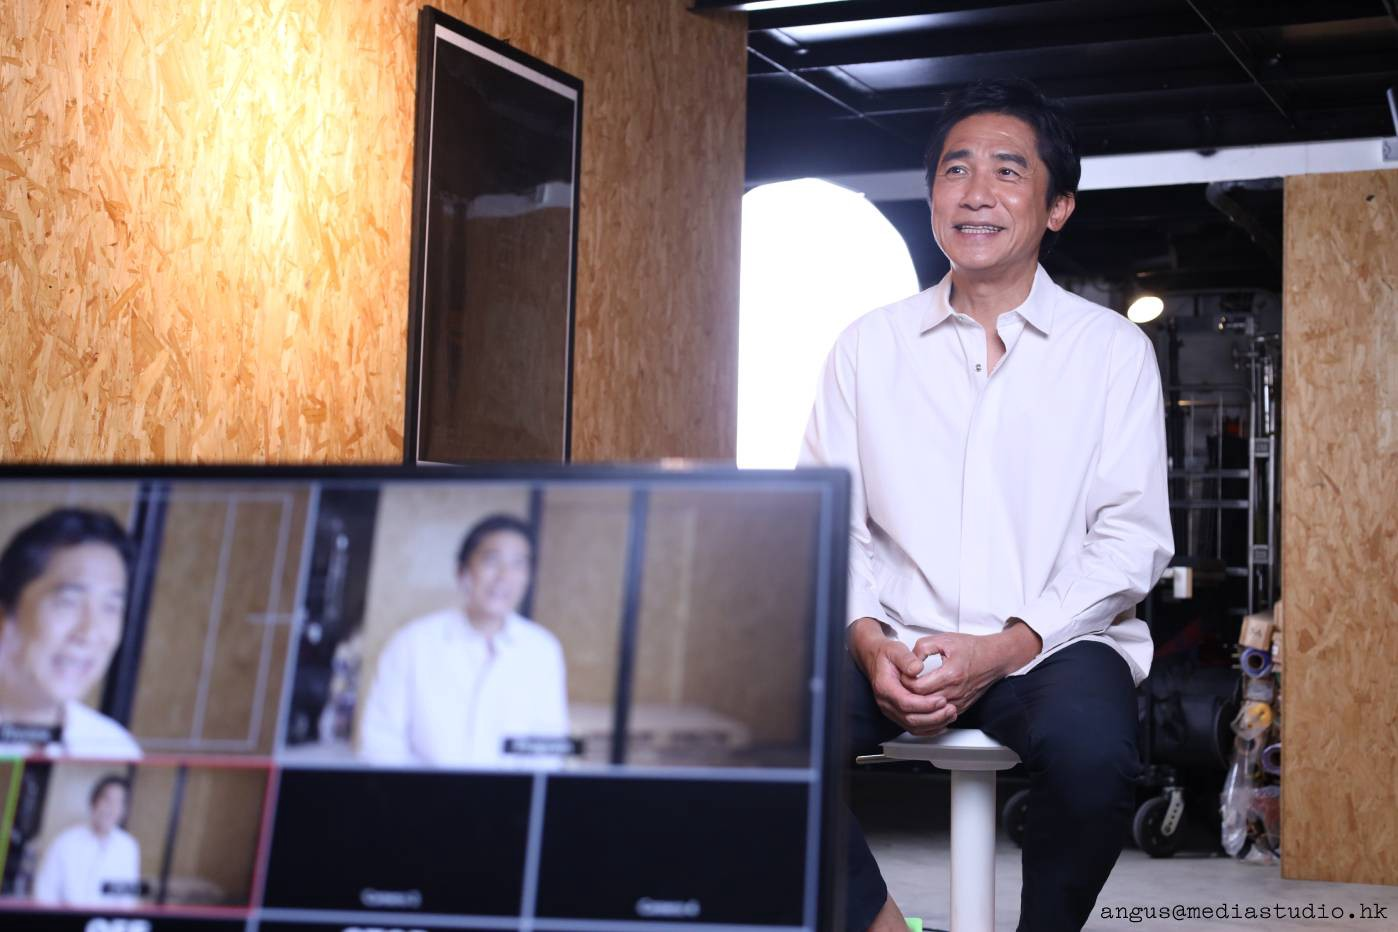 Tony Leung Chiu-wai sitting on a chair for an interview inside a warehouse. A screen shows different camera angles on Tony.